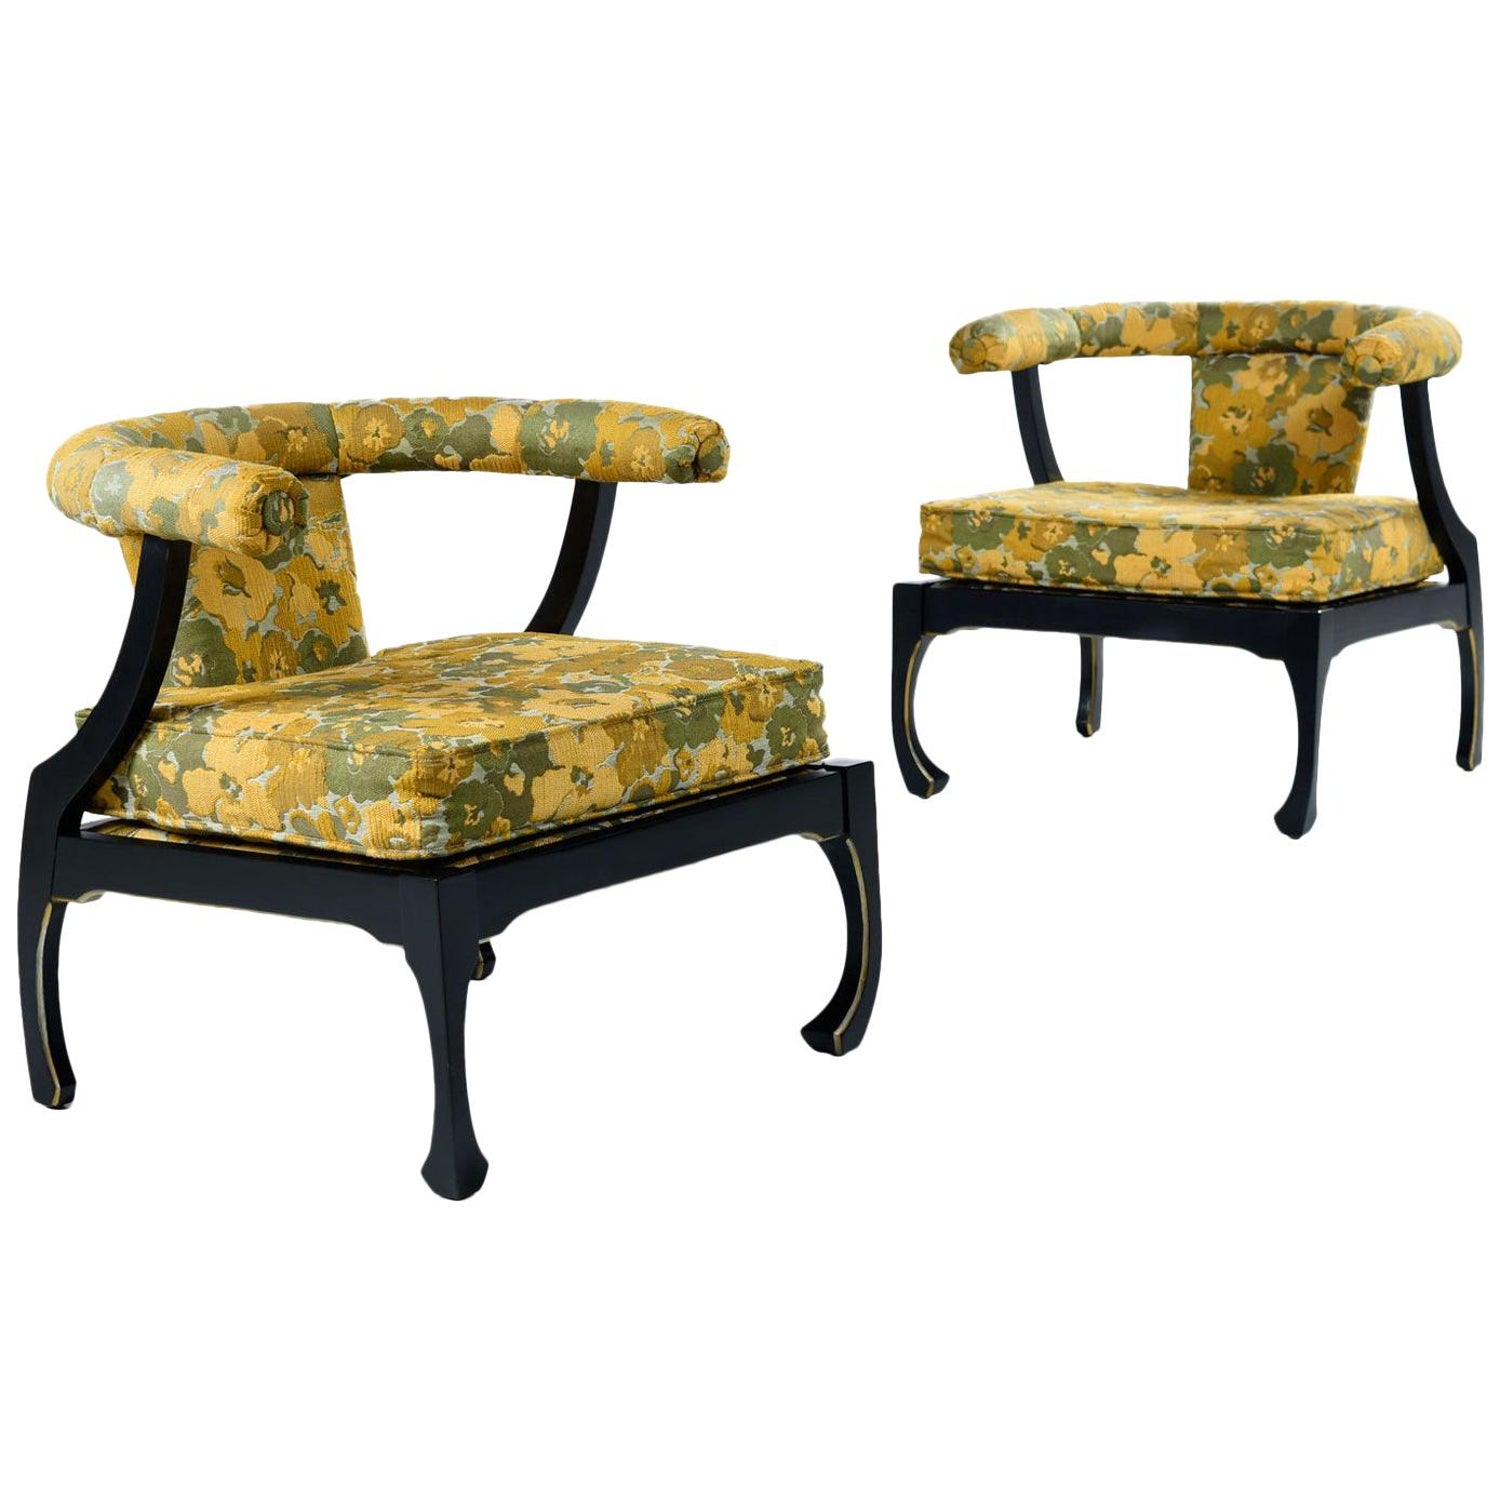 Remarkable Chinoiserie Armchairs 27 For Sale At 1Stdibs Machost Co Dining Chair Design Ideas Machostcouk